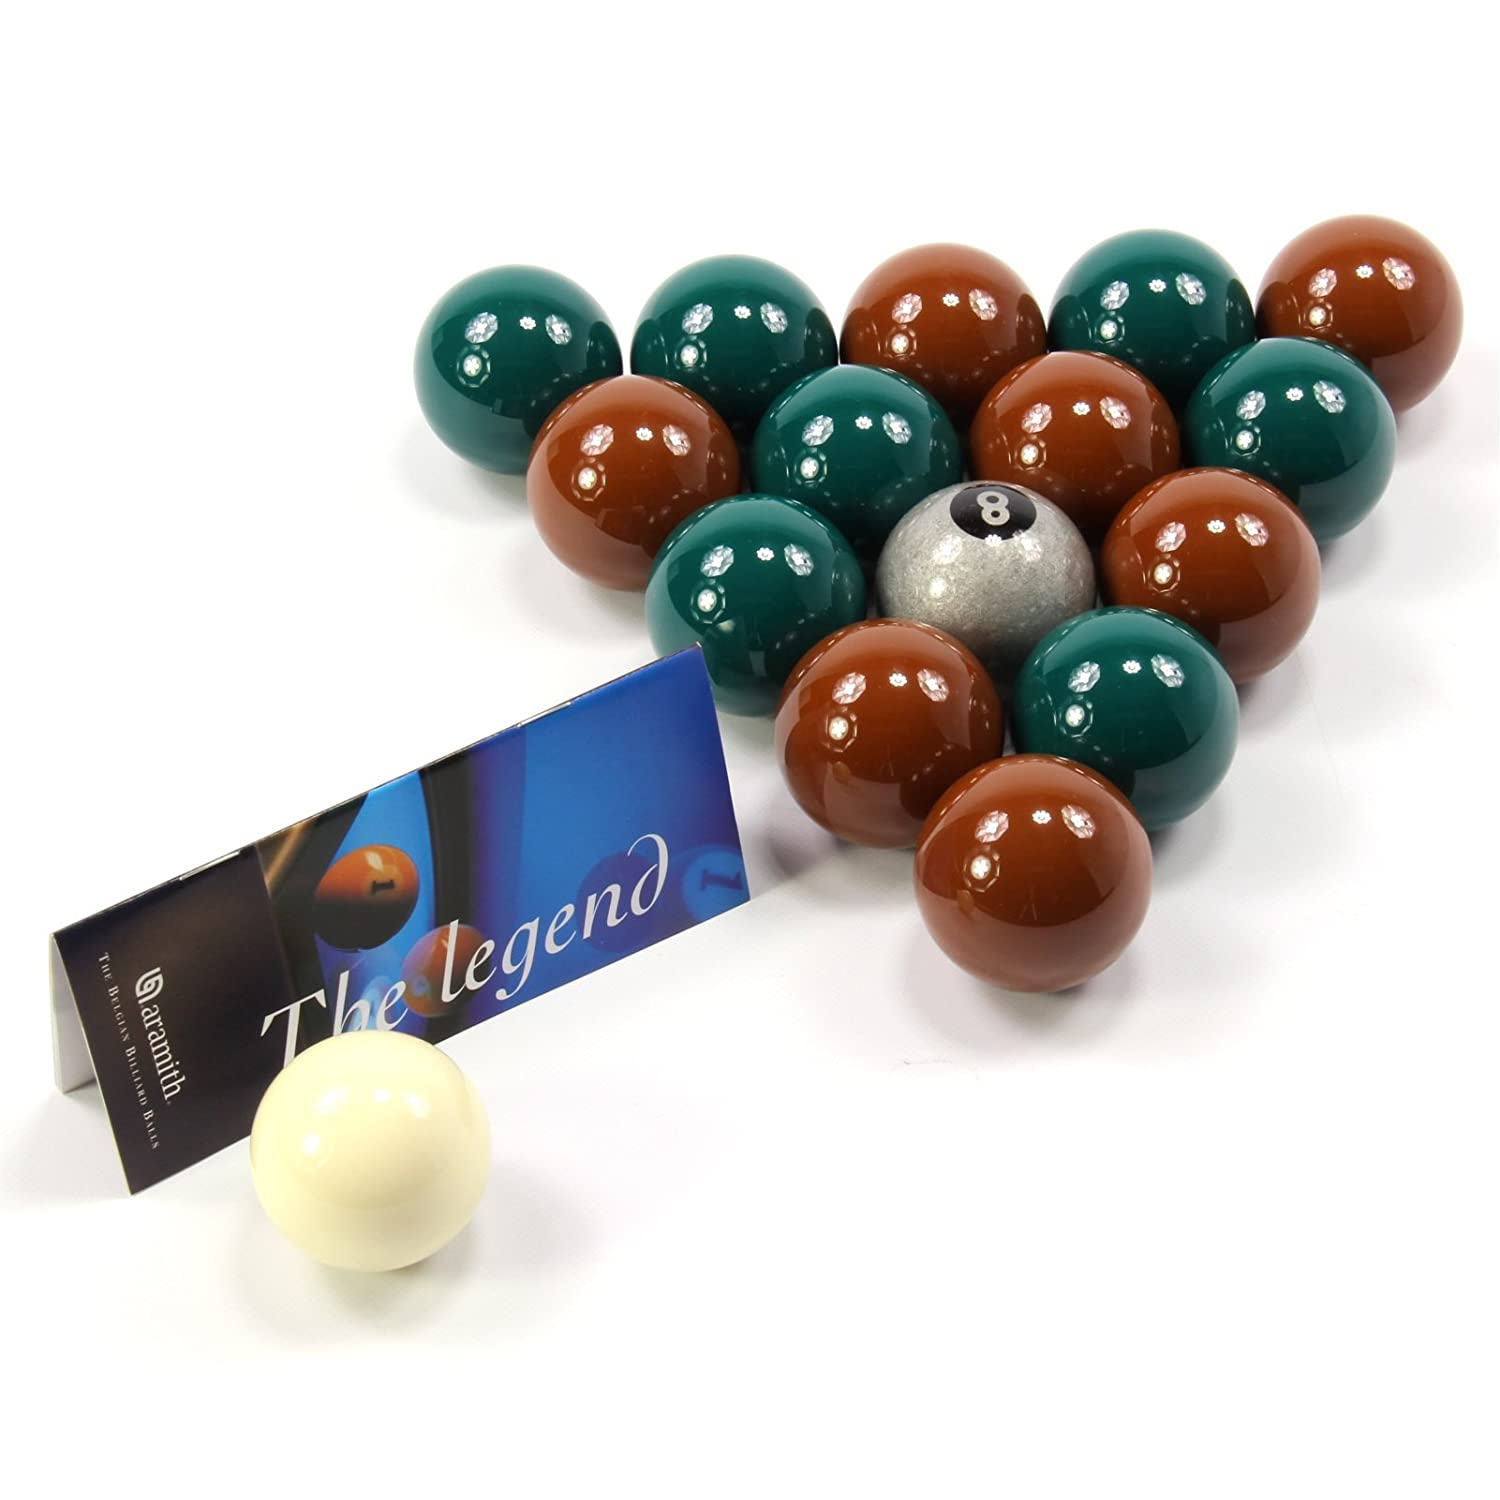 EXCLUSIVE! Aramith Premier SILVER 8 BALL Edition GREEN & BROWN Pool Balls